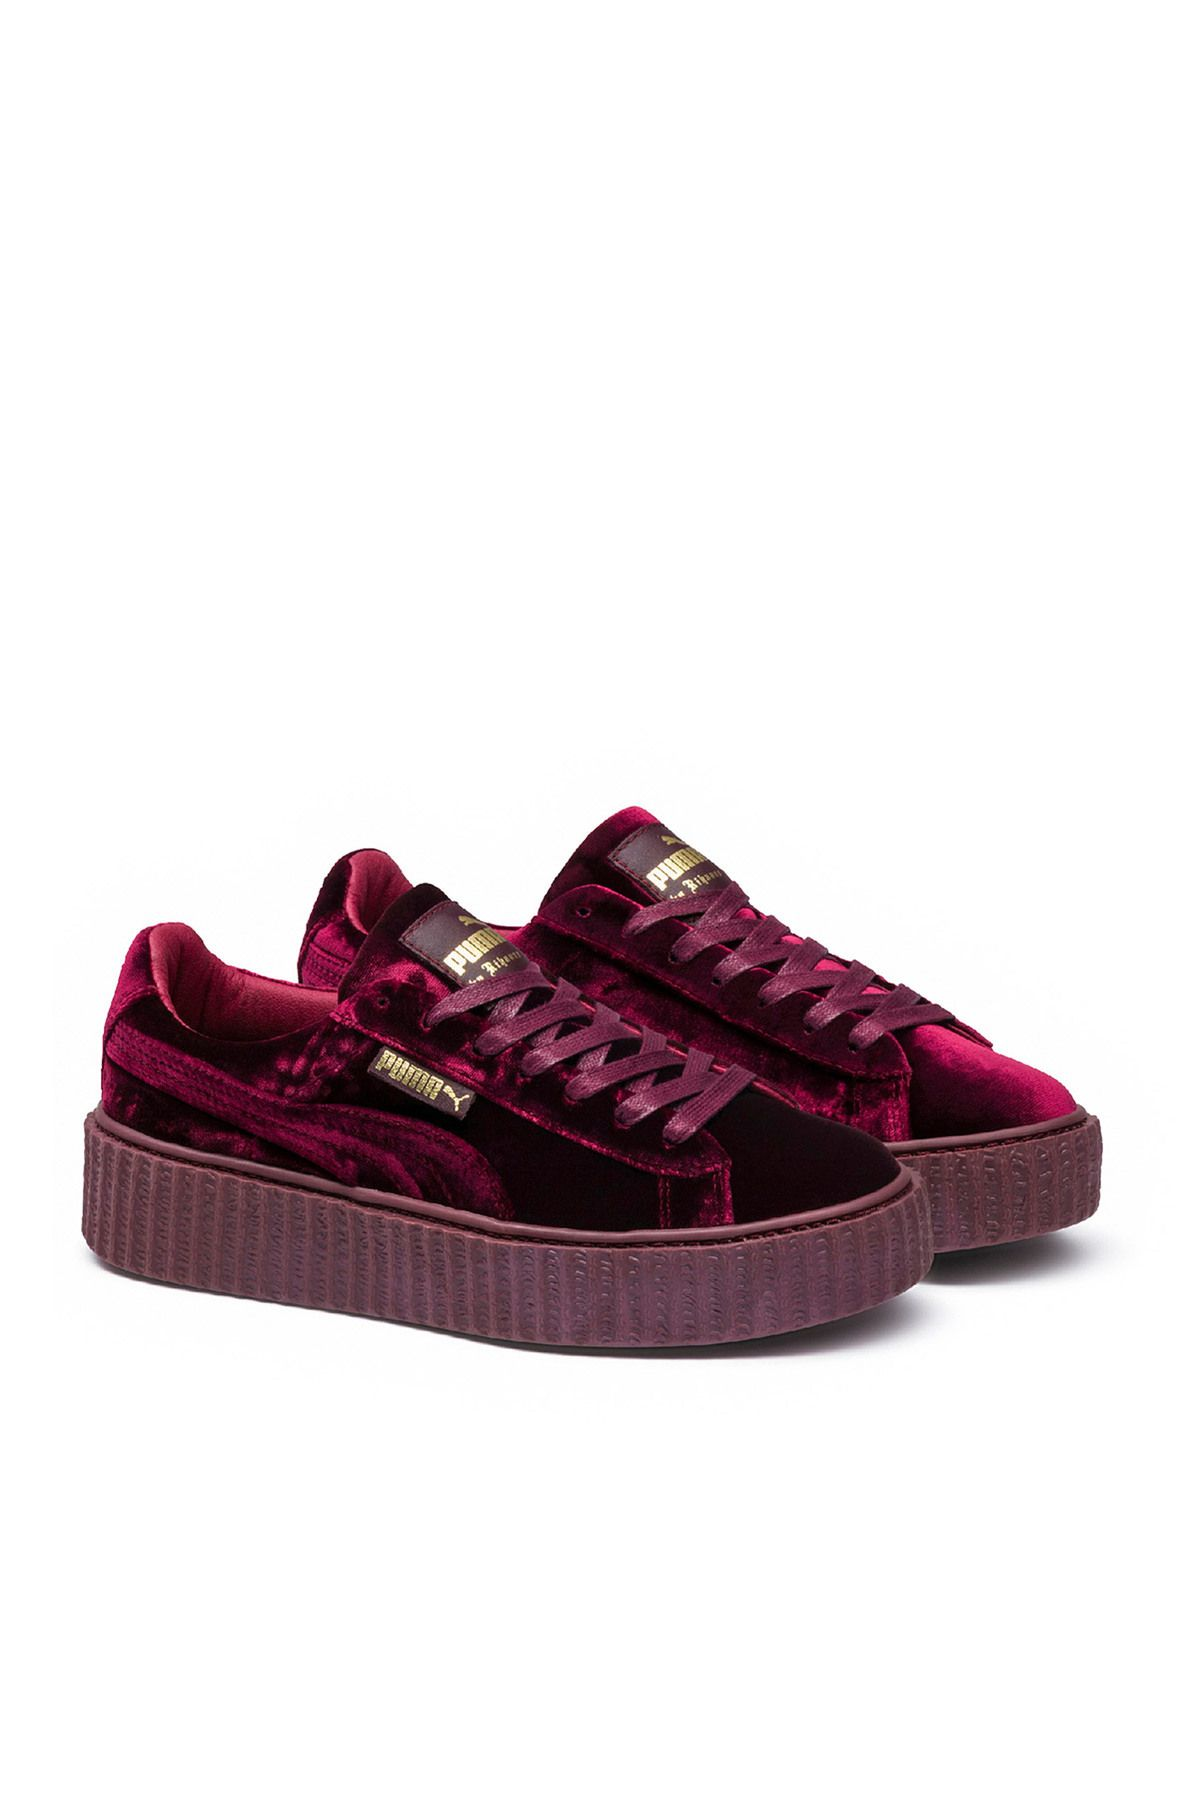 puma creepers us